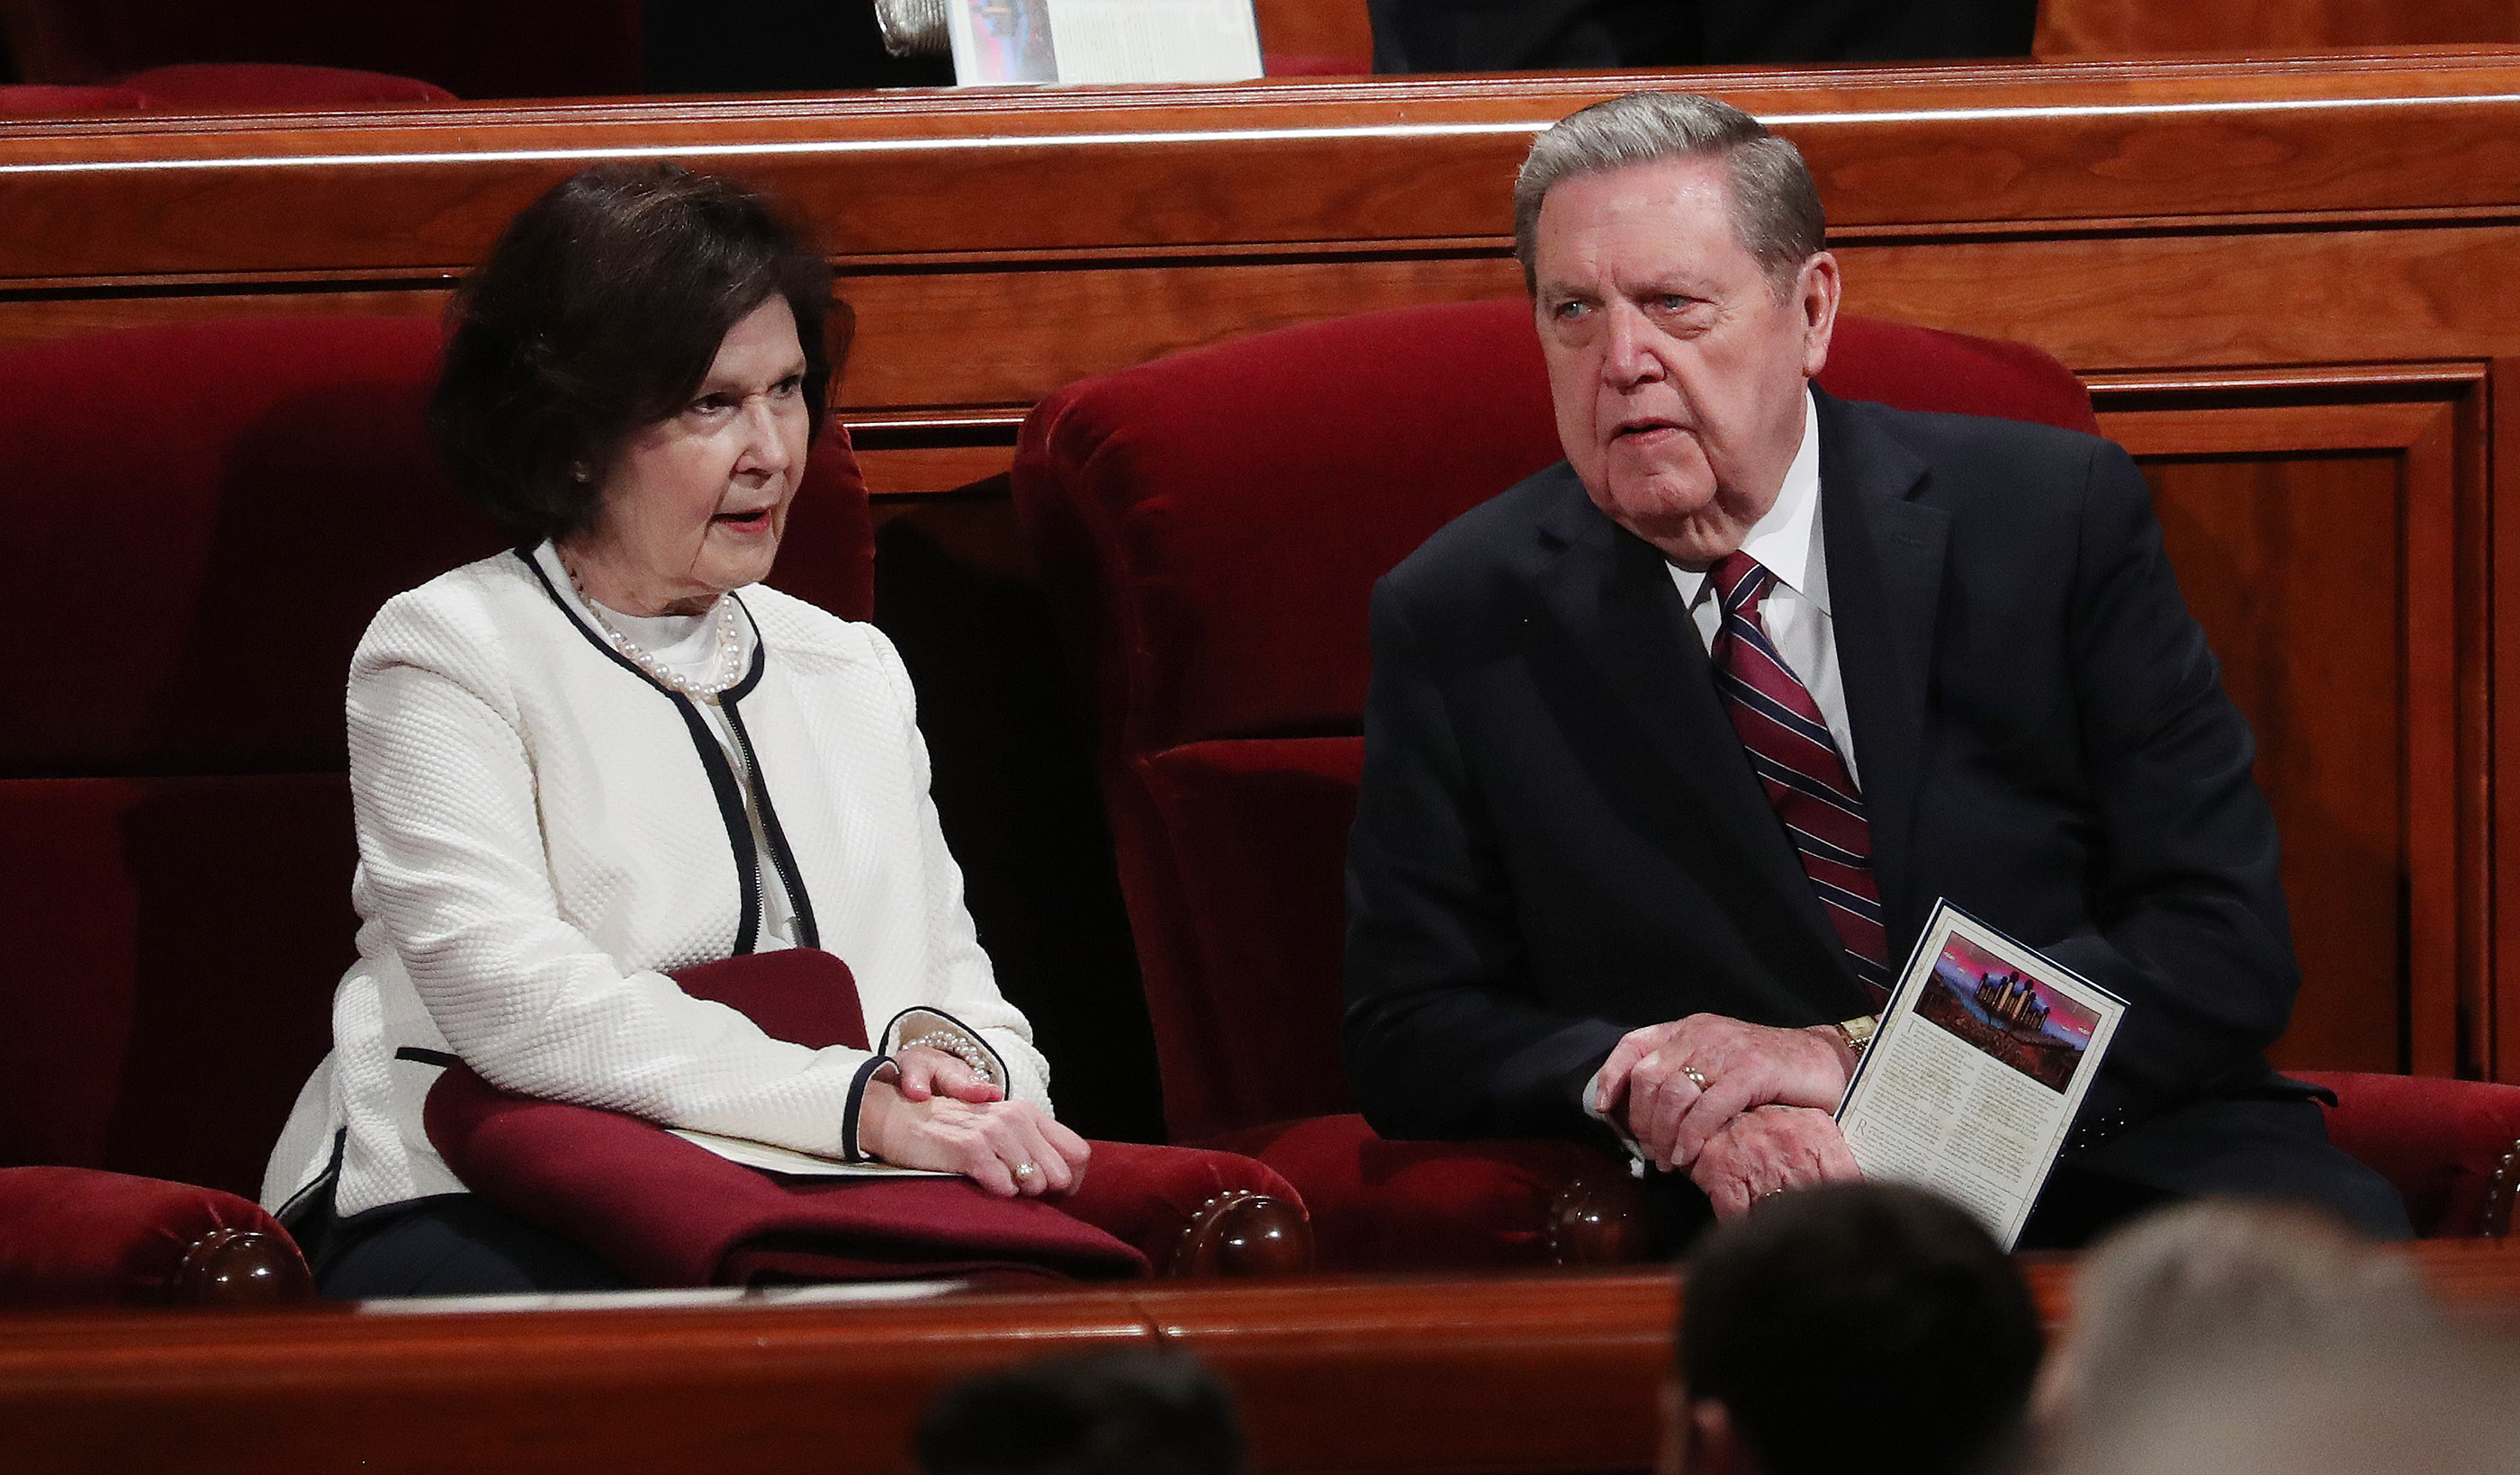 Elder Jeffery R. Holland of the Quorum of the Twelve Apostles sits with his wife, Sister Patricia Holland, prior to the Sunday morning session of the 189th Annual General Conference of The Church of Jesus Christ of Latter-day Saints in the Conference Center in Salt Lake City on Sunday, April 7, 2019.